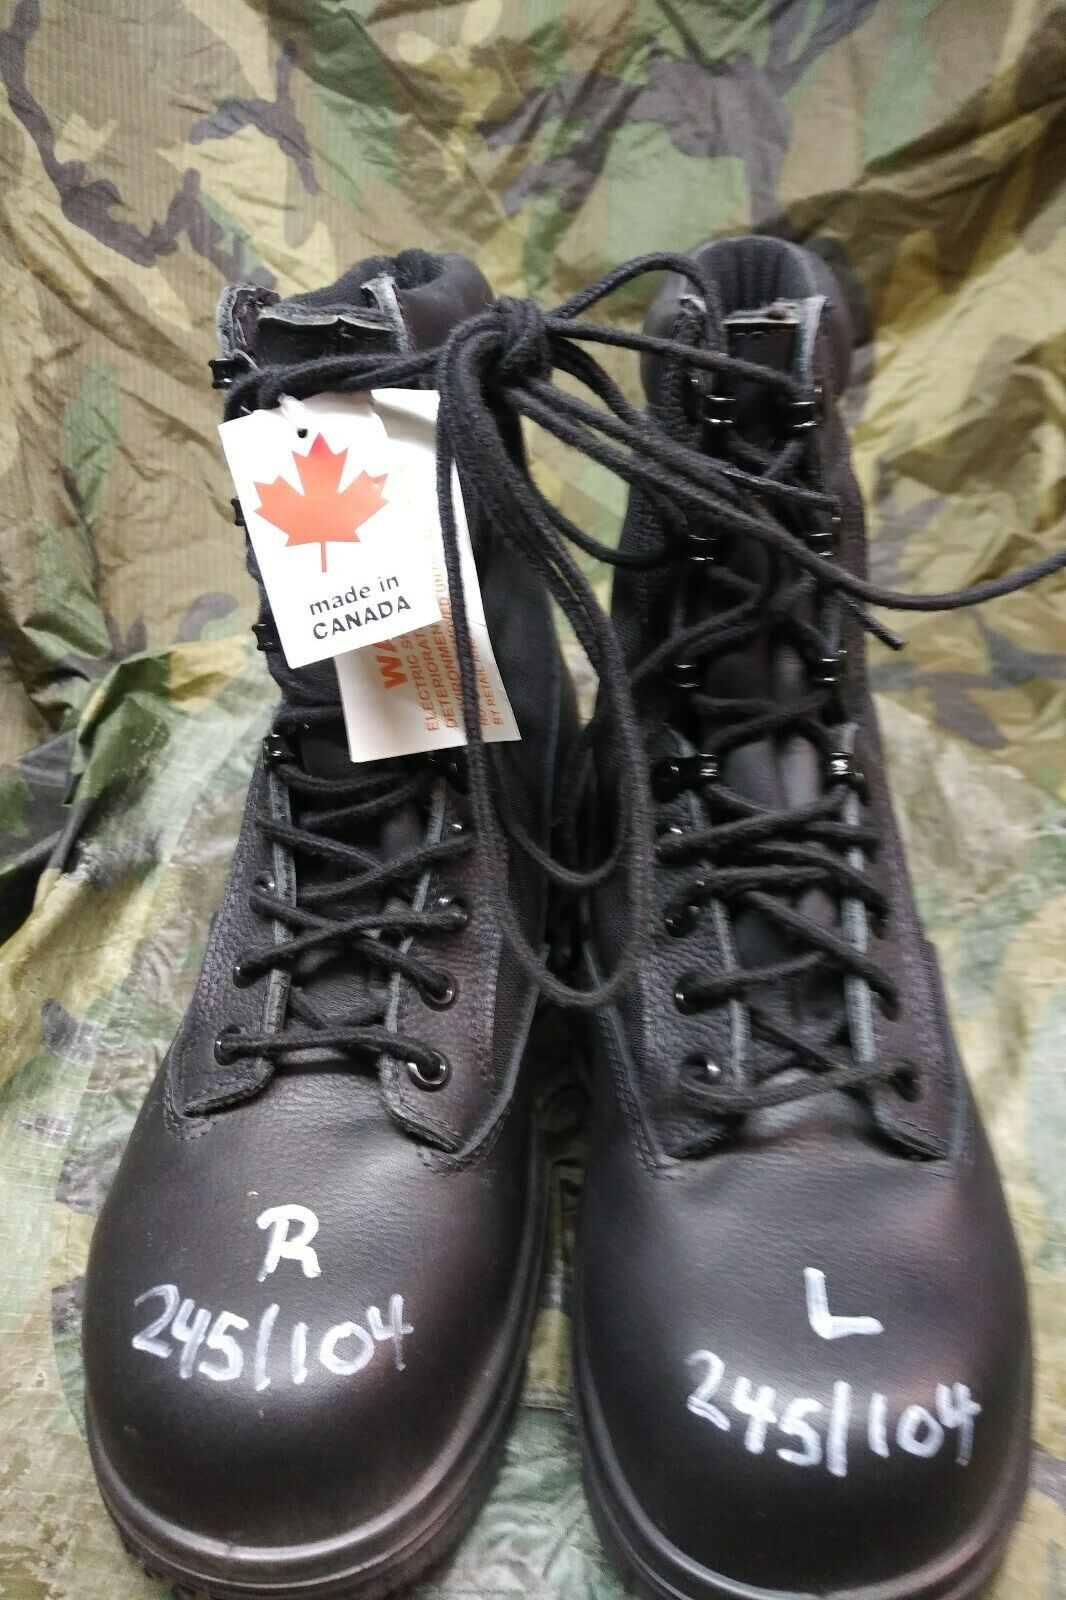 Canadian Navy Cold Wet Weather Safety Boots Size 235 100 GORETEX lined CSA